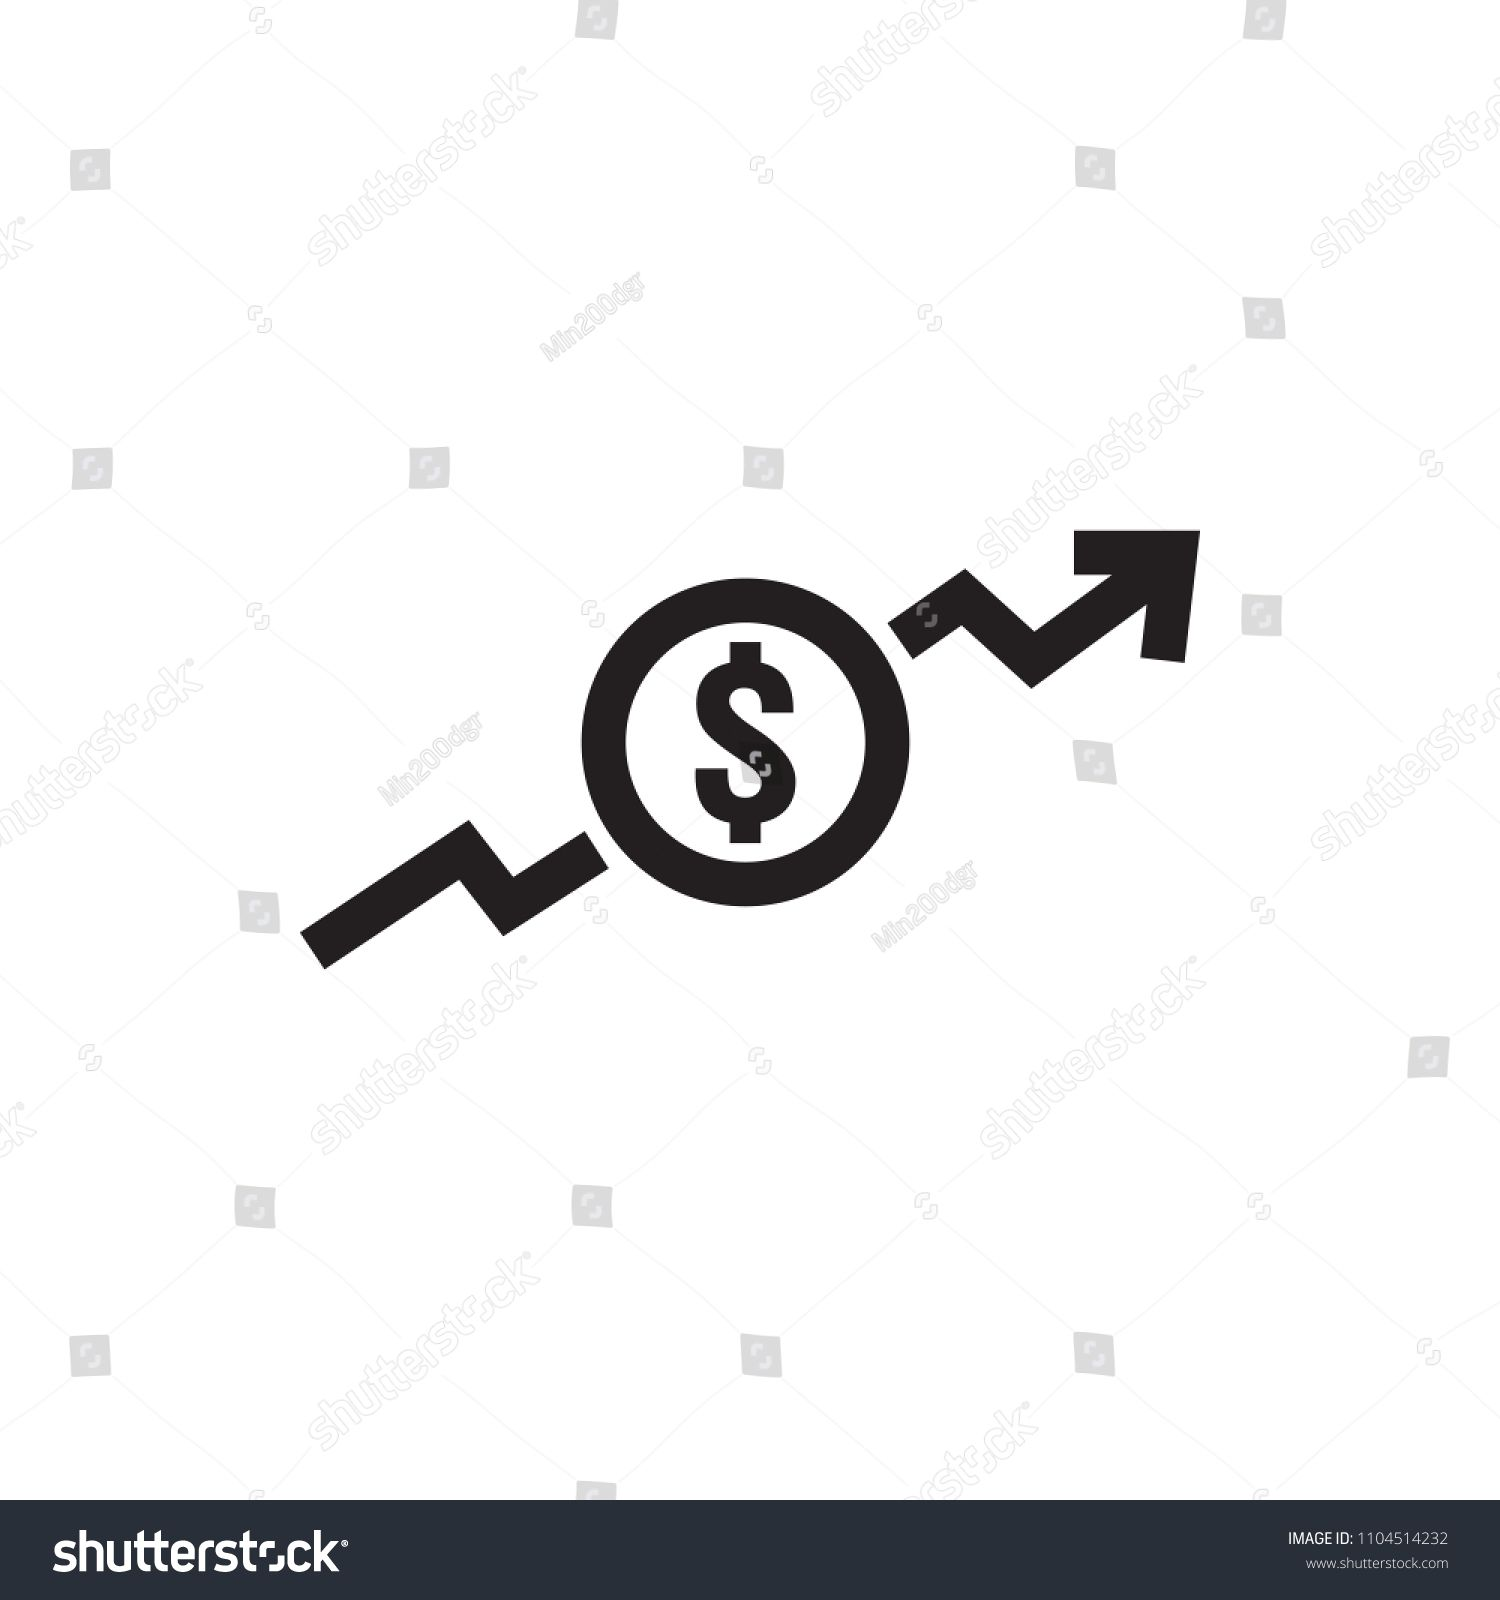 Dollar Rate Increase Icon Money Symbol With Stretching Arrow Up Rising Prices Business Cost Sale Icon Cash Salary Dollar Rate Symbols Graphic Design Trends